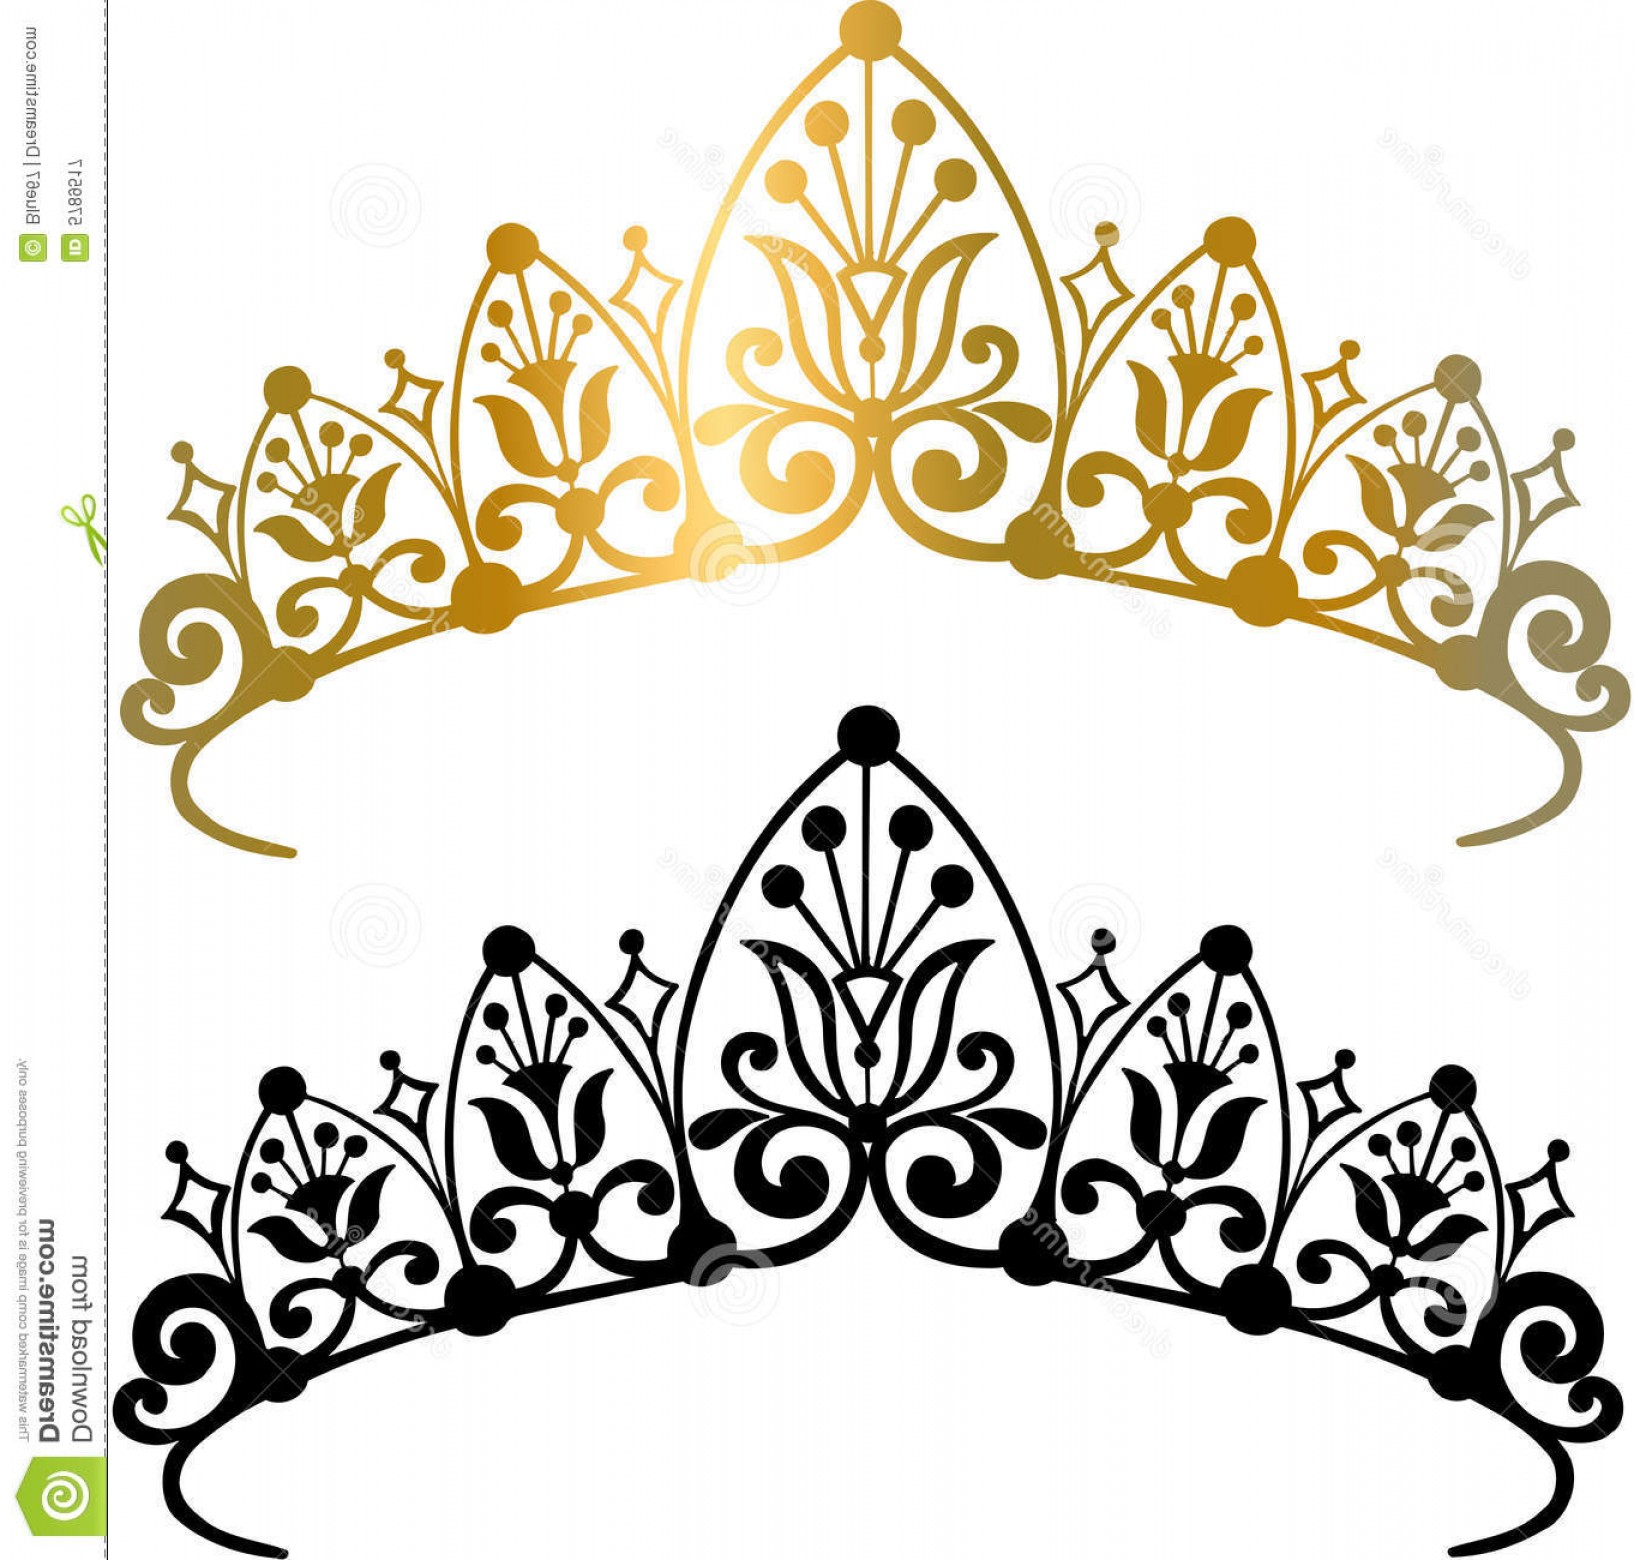 Pageant Tiaras Vector: Royalty Free Stock Photography Tiara Crown Vector Illustration Image